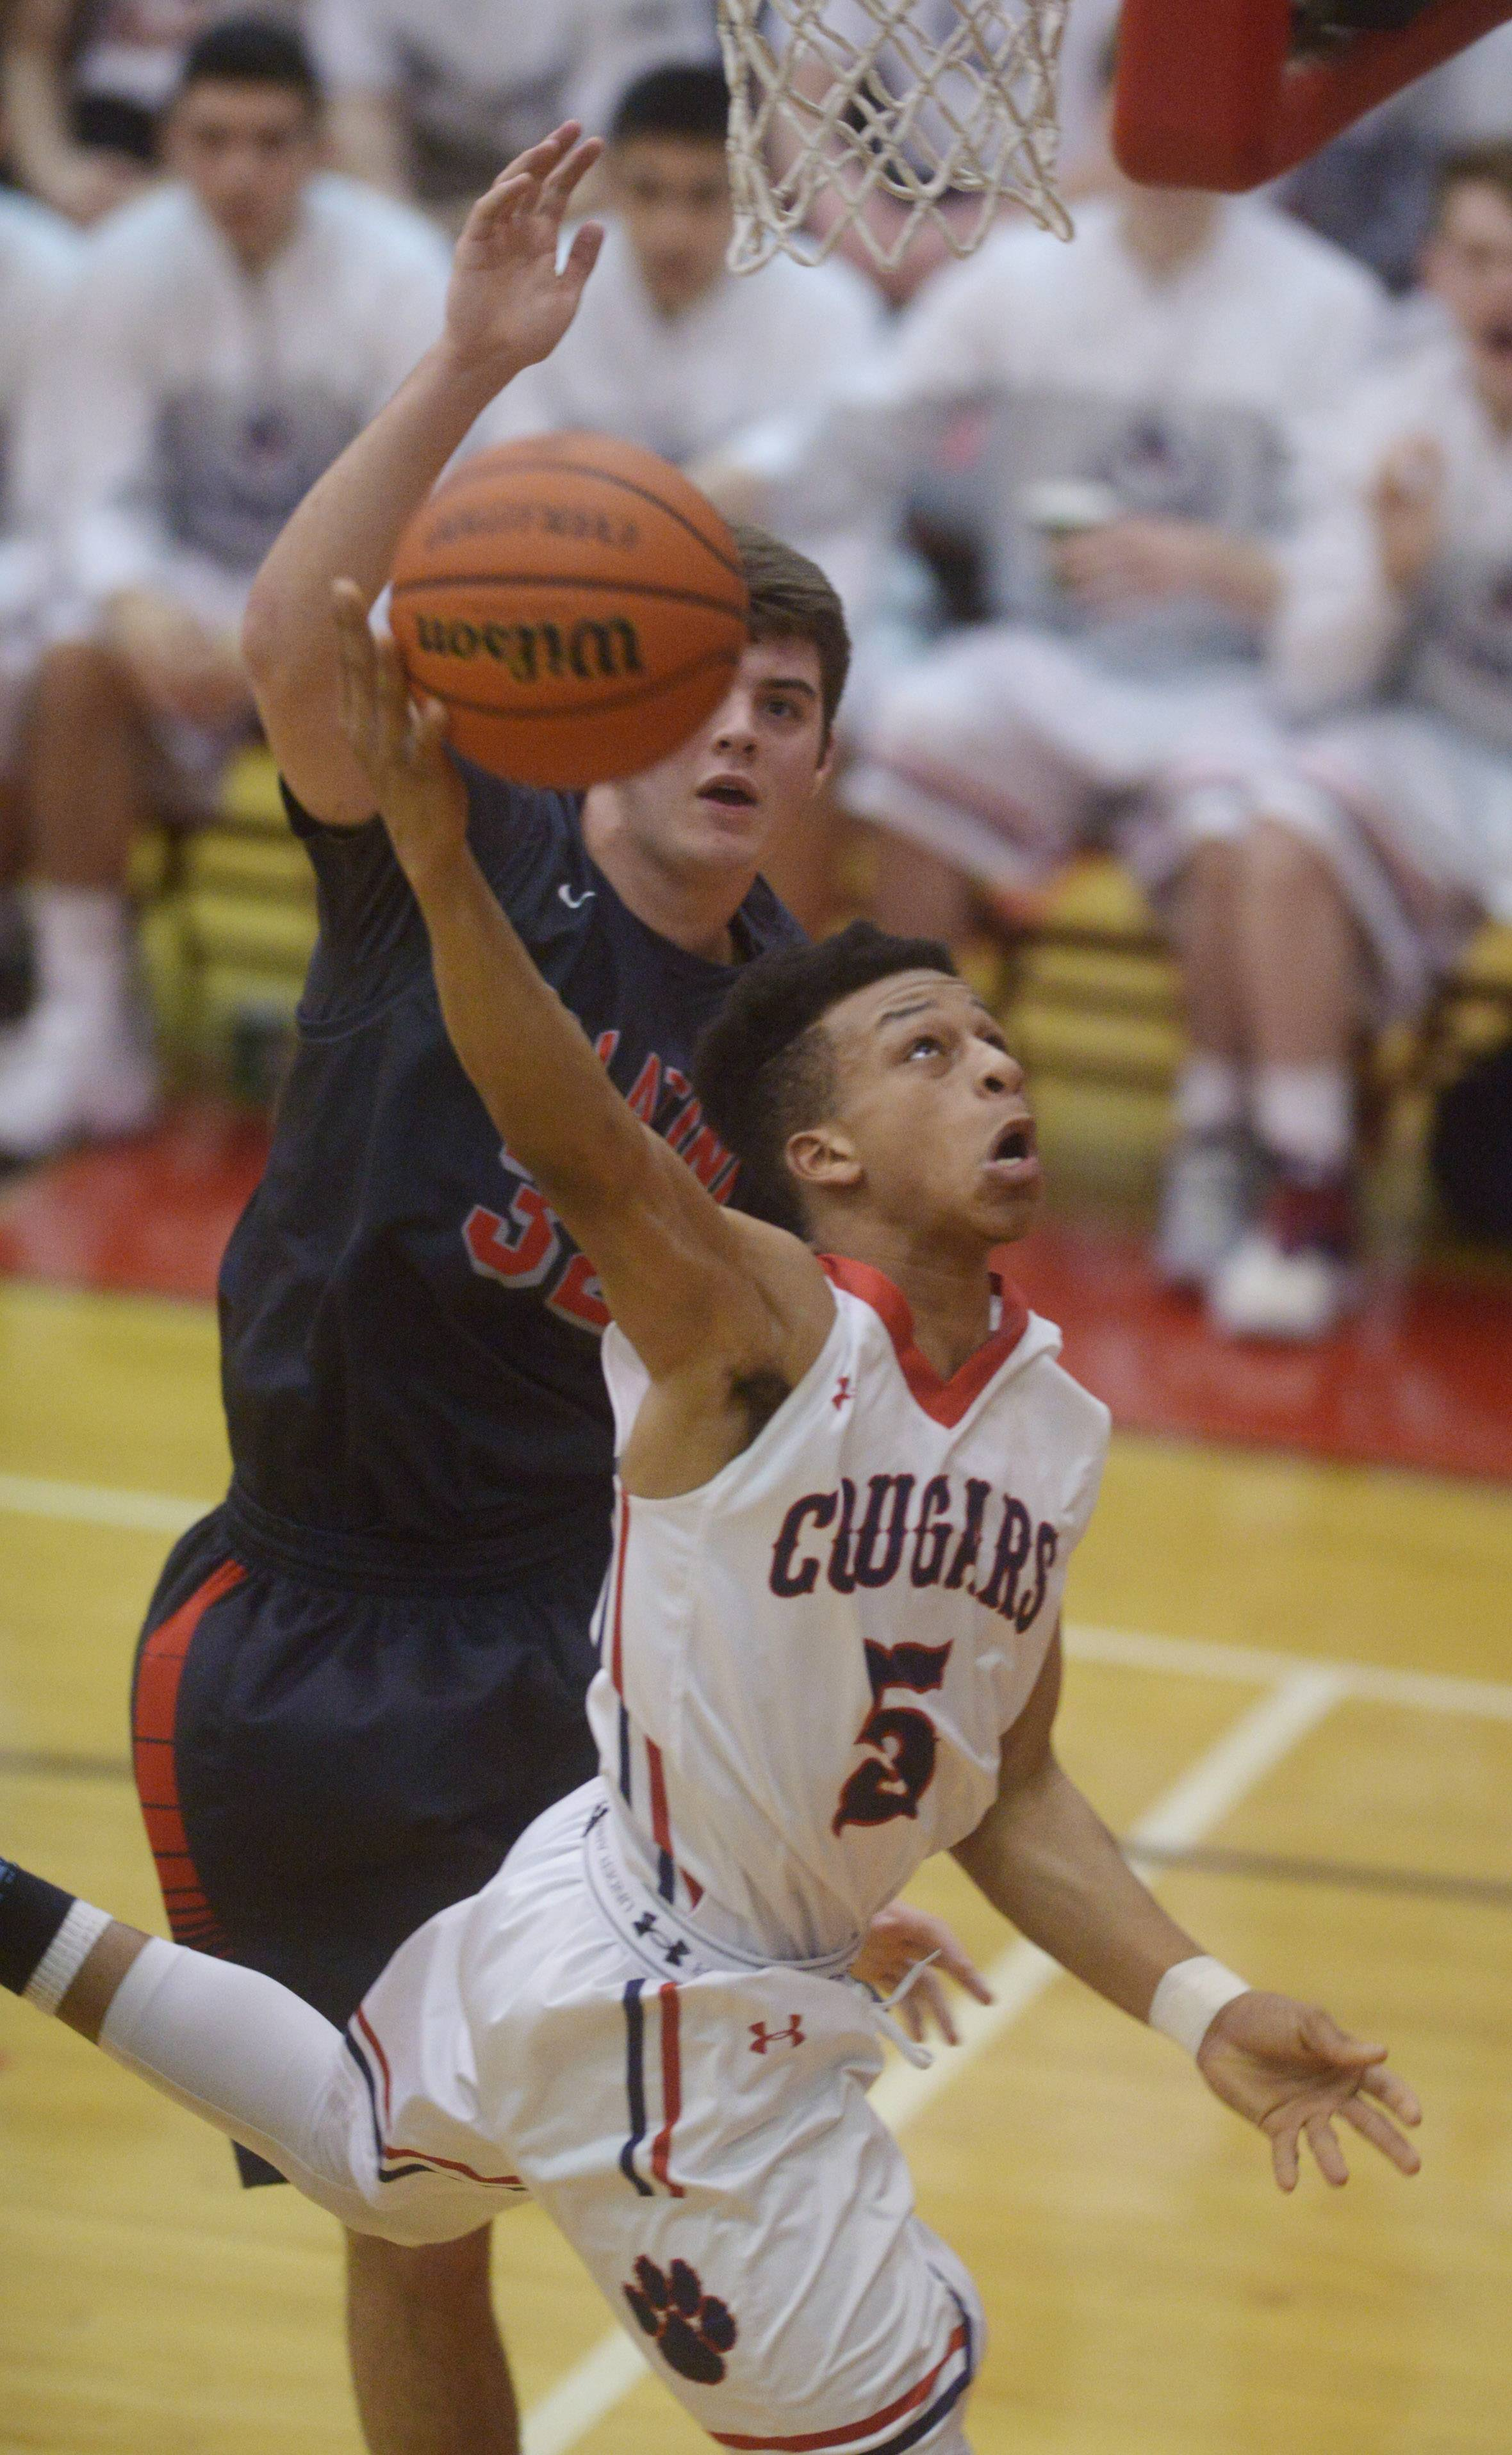 Conant's C.J. Deshazer drives to the basket in front of Palatine's Scott Elter during the Class 4A regional semifinal at Palatine on Tuesday.